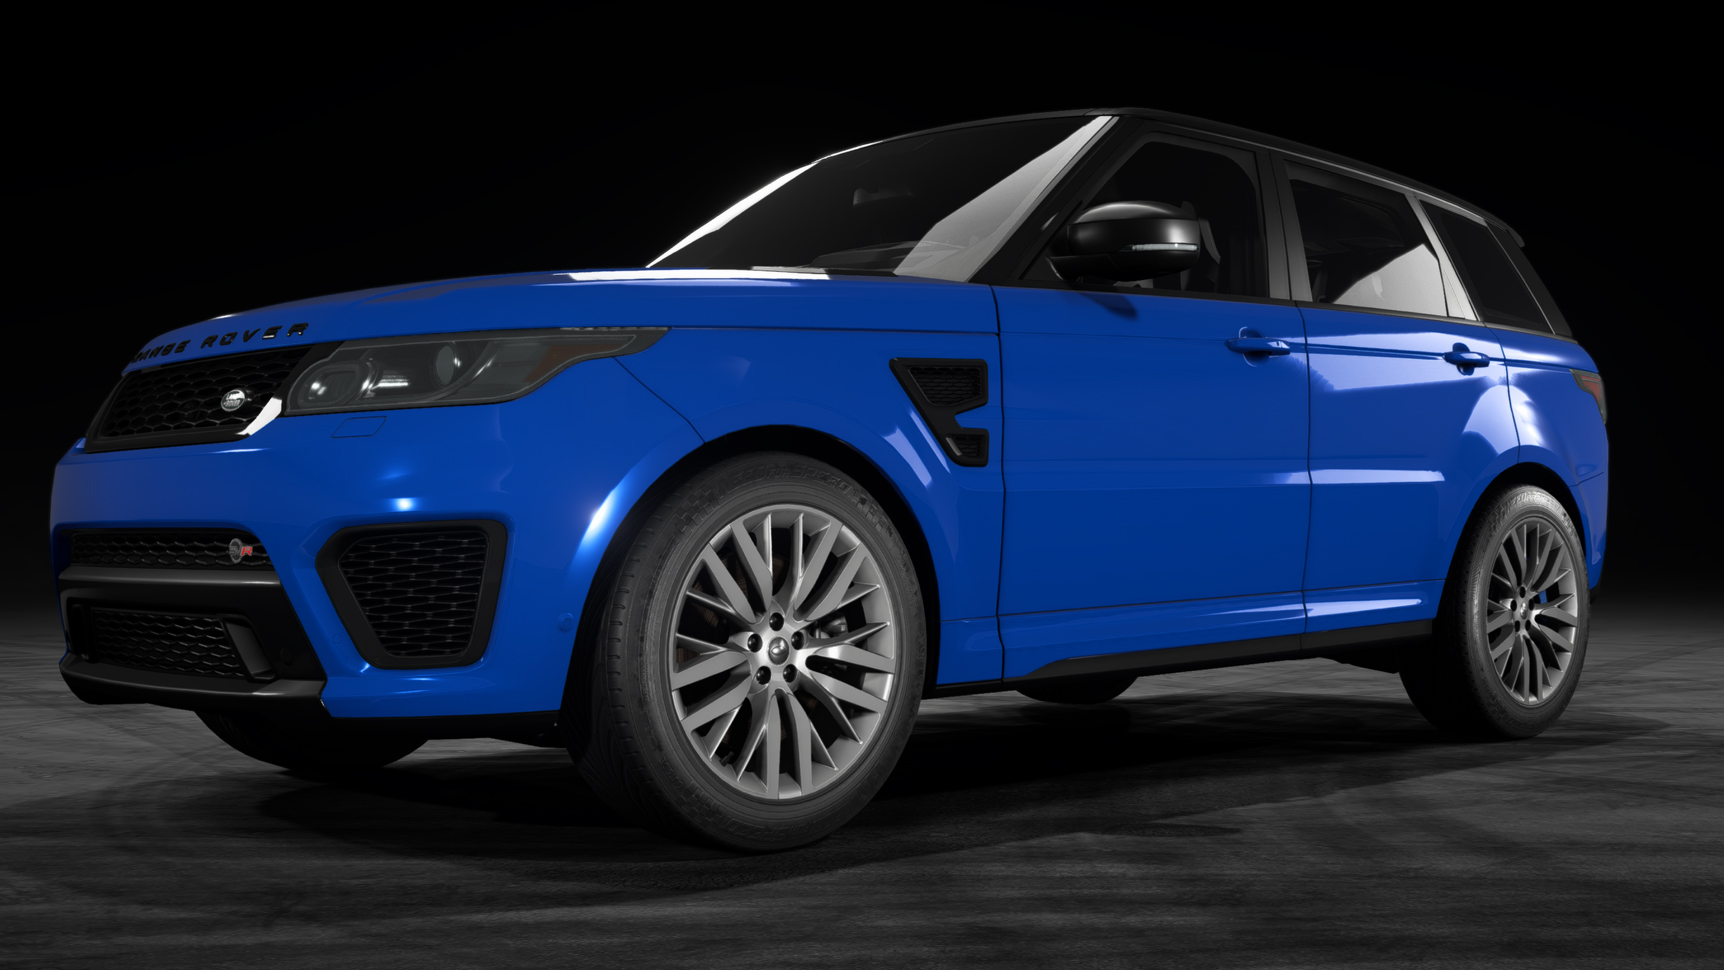 Land Rover Range Rover Sport SVR (L494) | Need for Speed Wiki ...